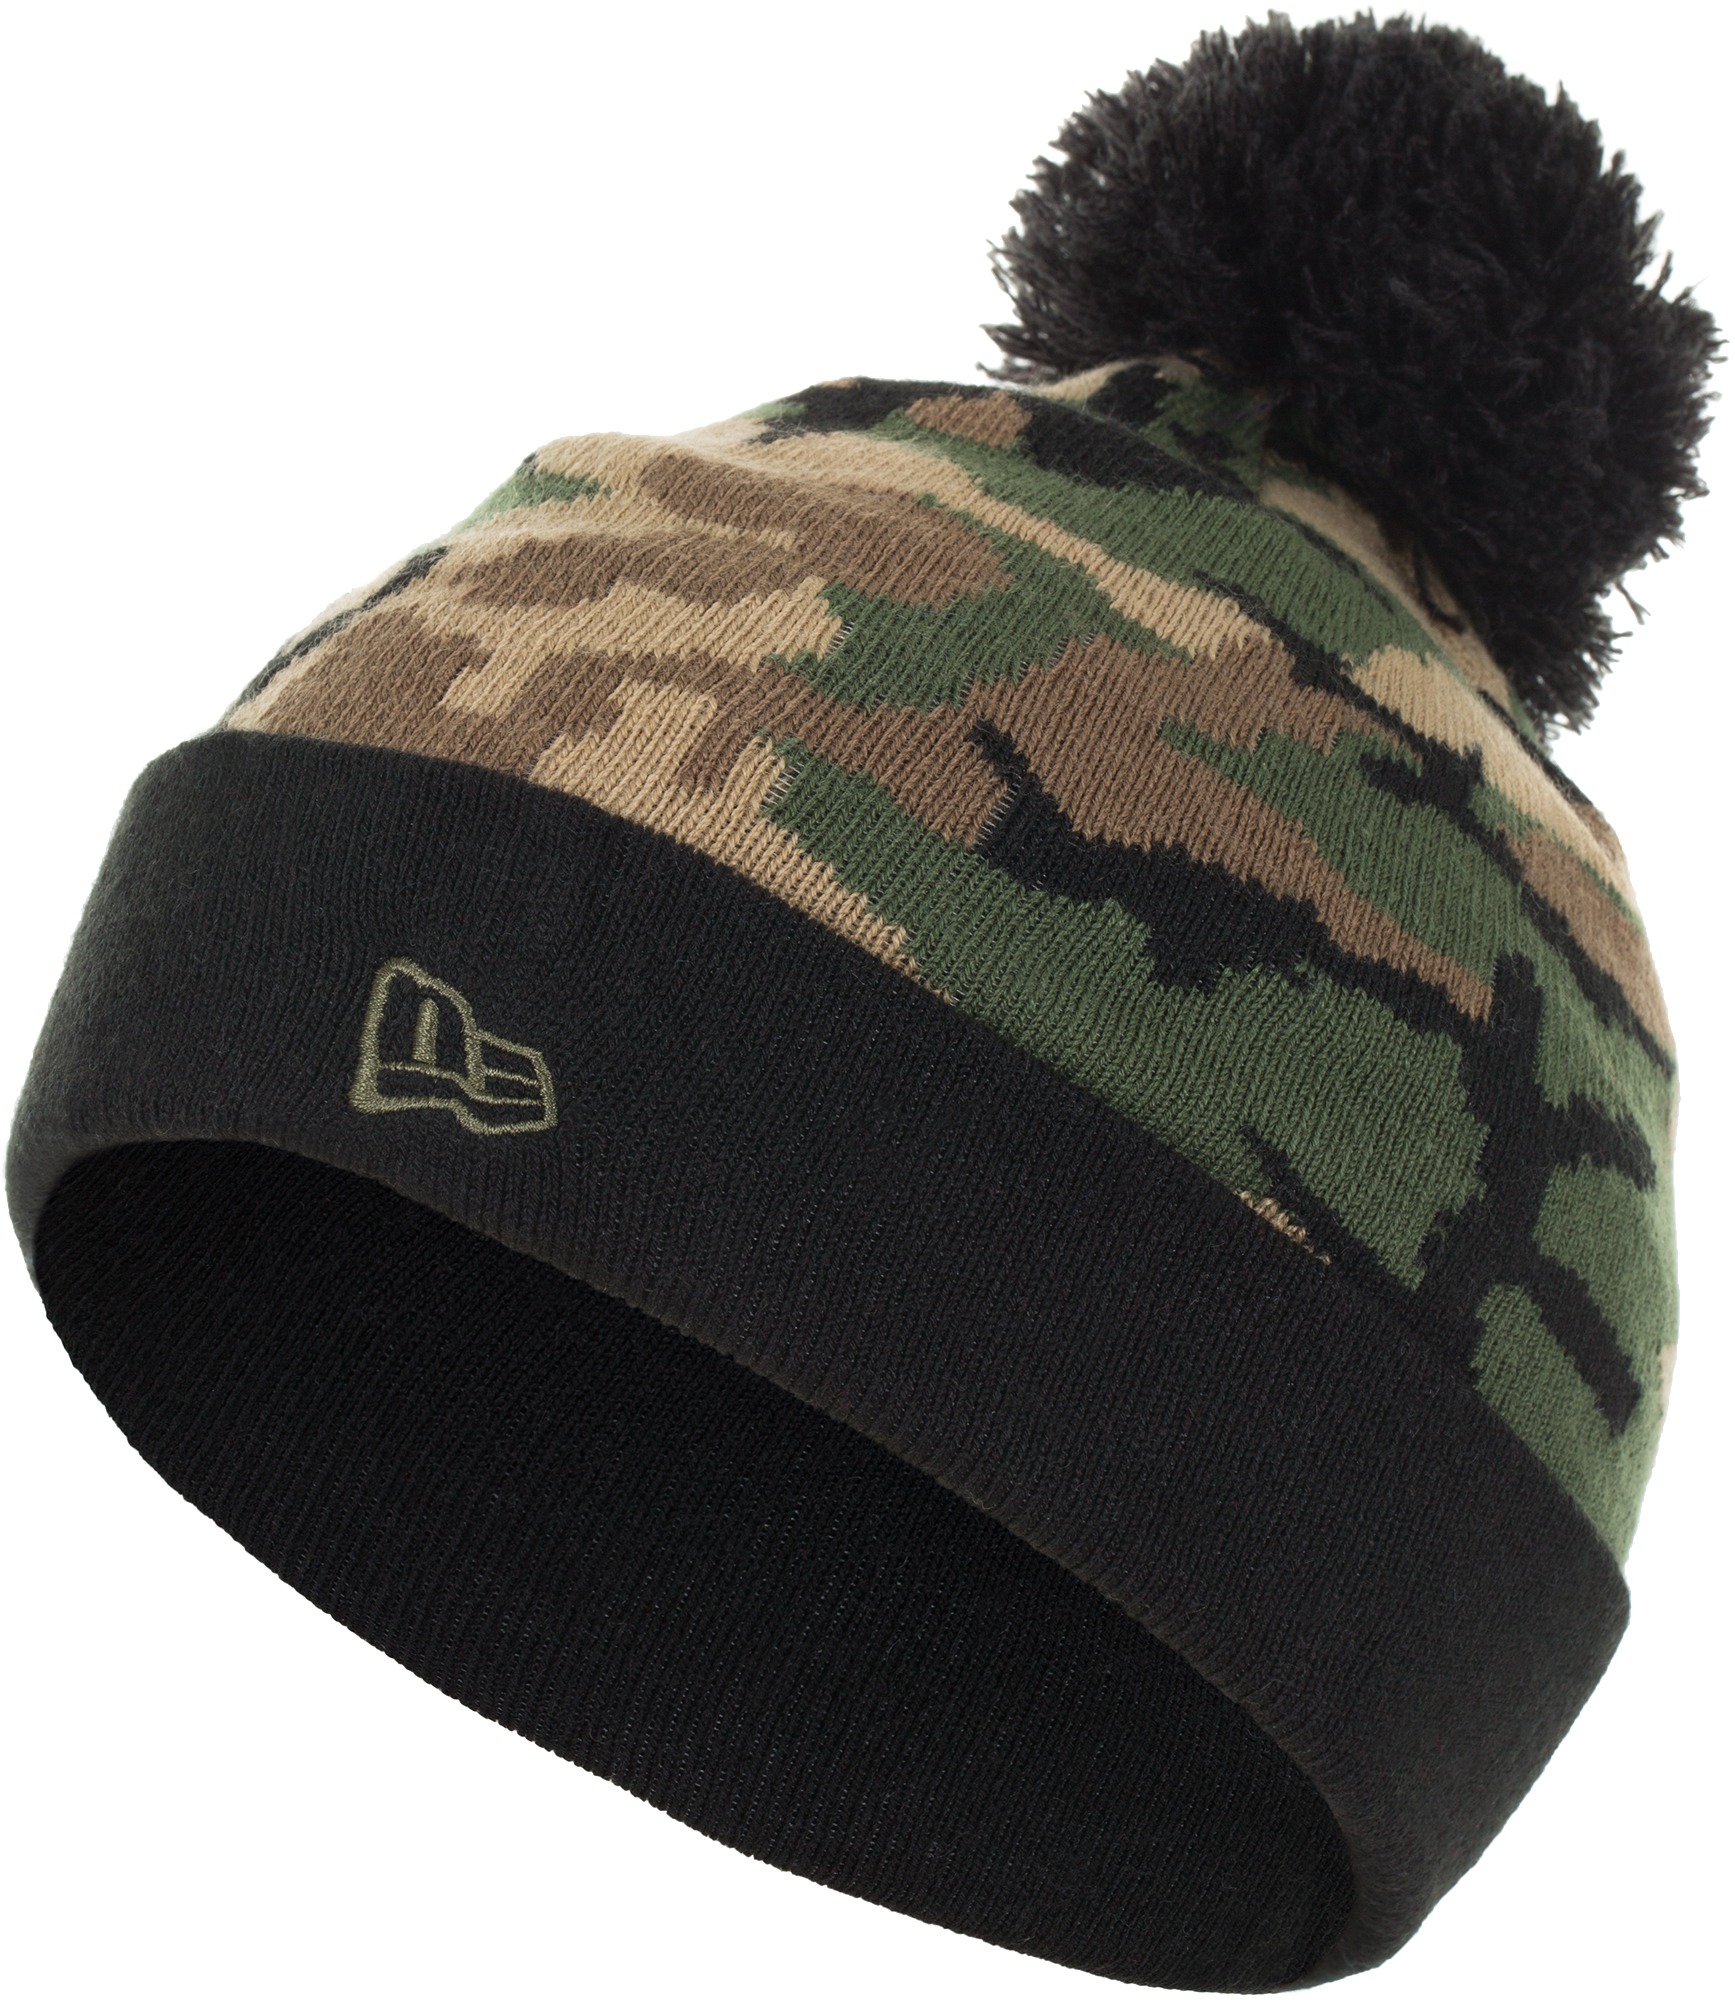 New Era Шапка для мальчиков New Era Lic 873 Kids Camo Knit, размер 54-55 цена